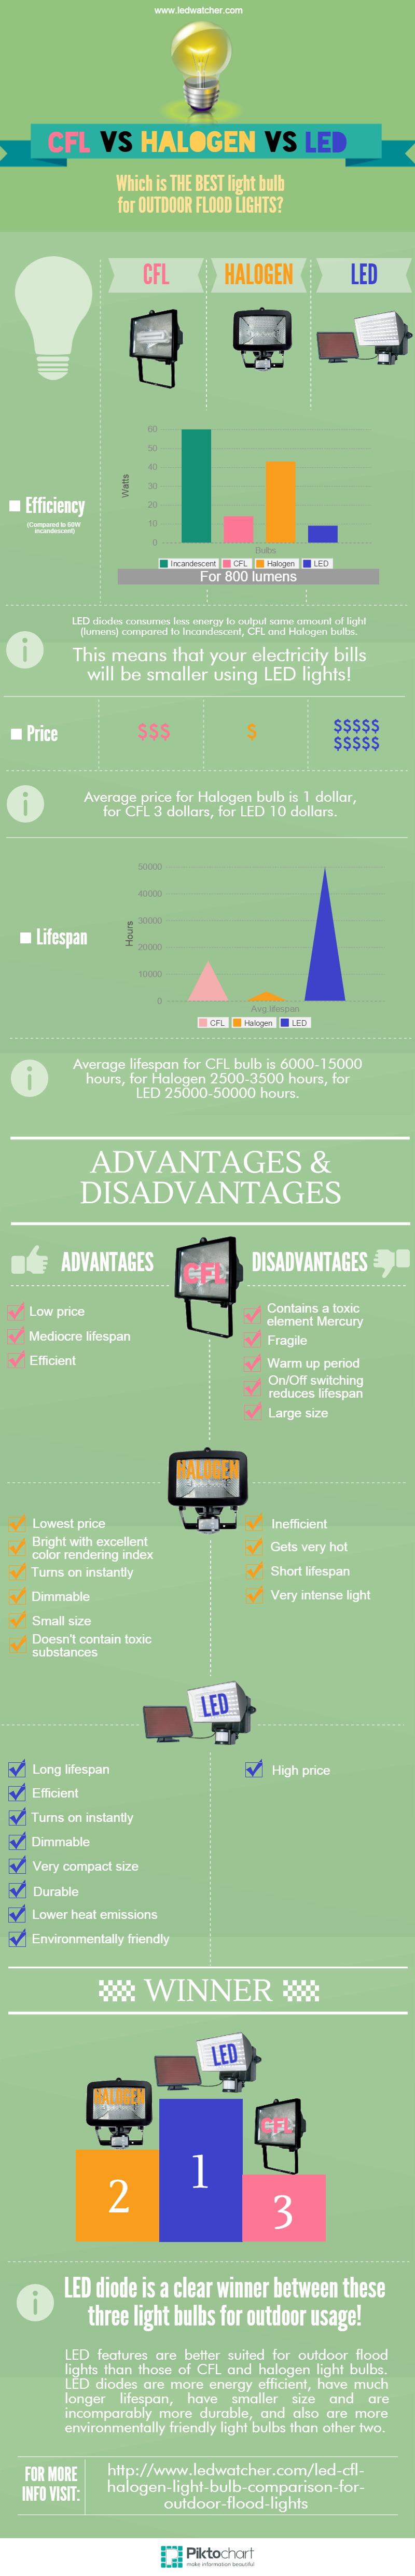 cfl-vs-halogen-vs-led-bulbs-infographic